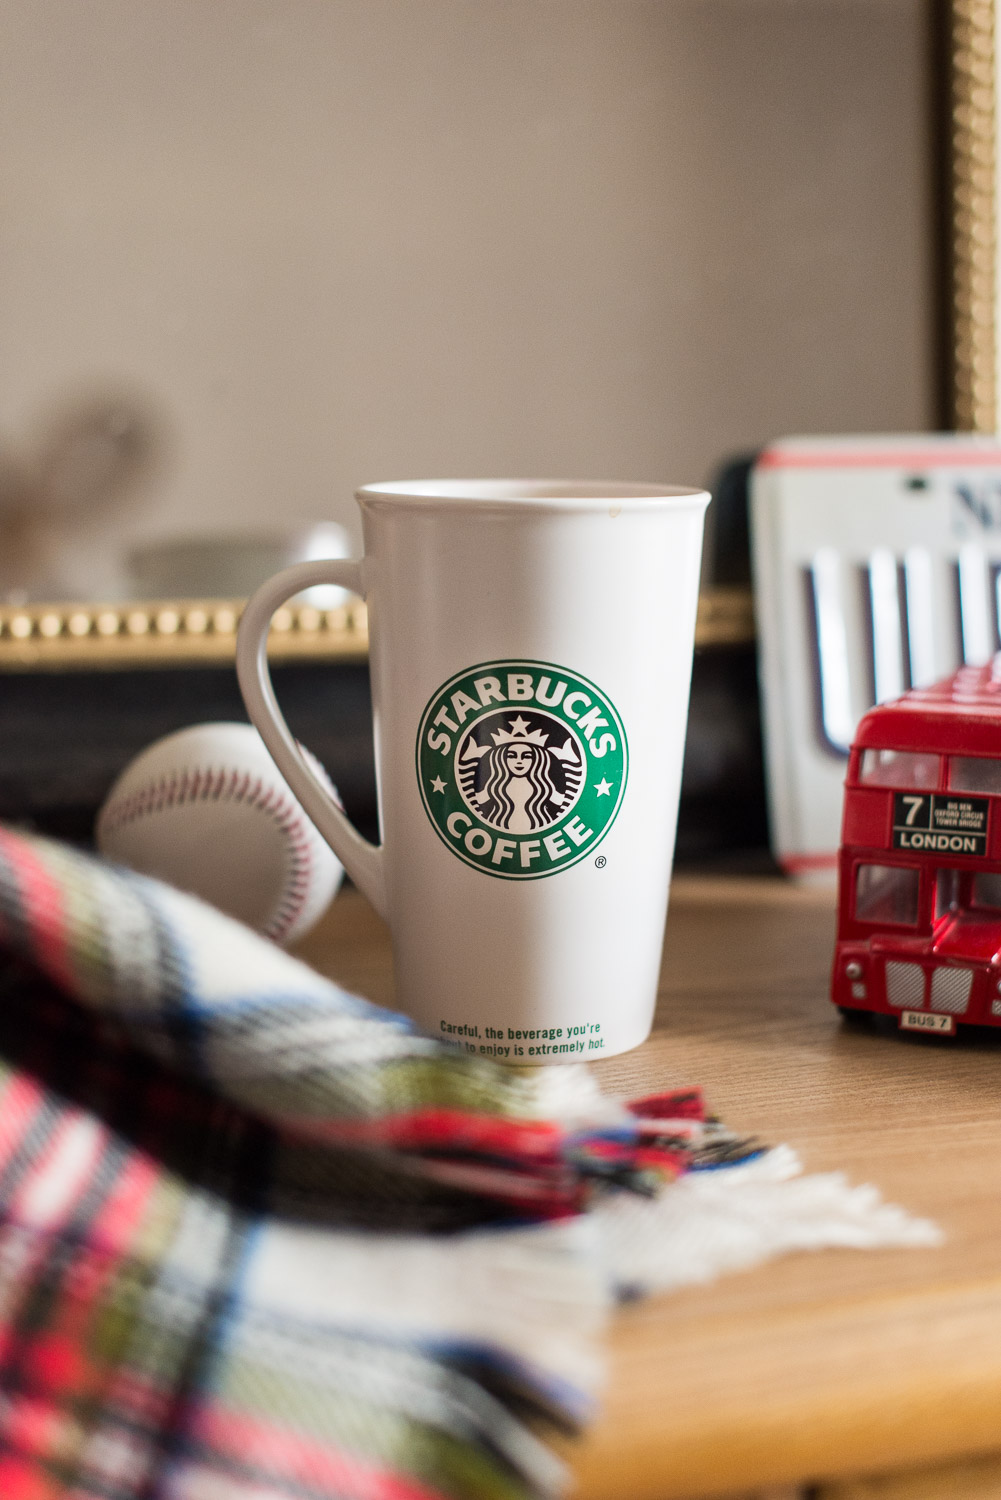 Blog mode et lifestyle Mode And The City - www.modeandthecity.net - Weekend cocooning à la campagne - Starbucks